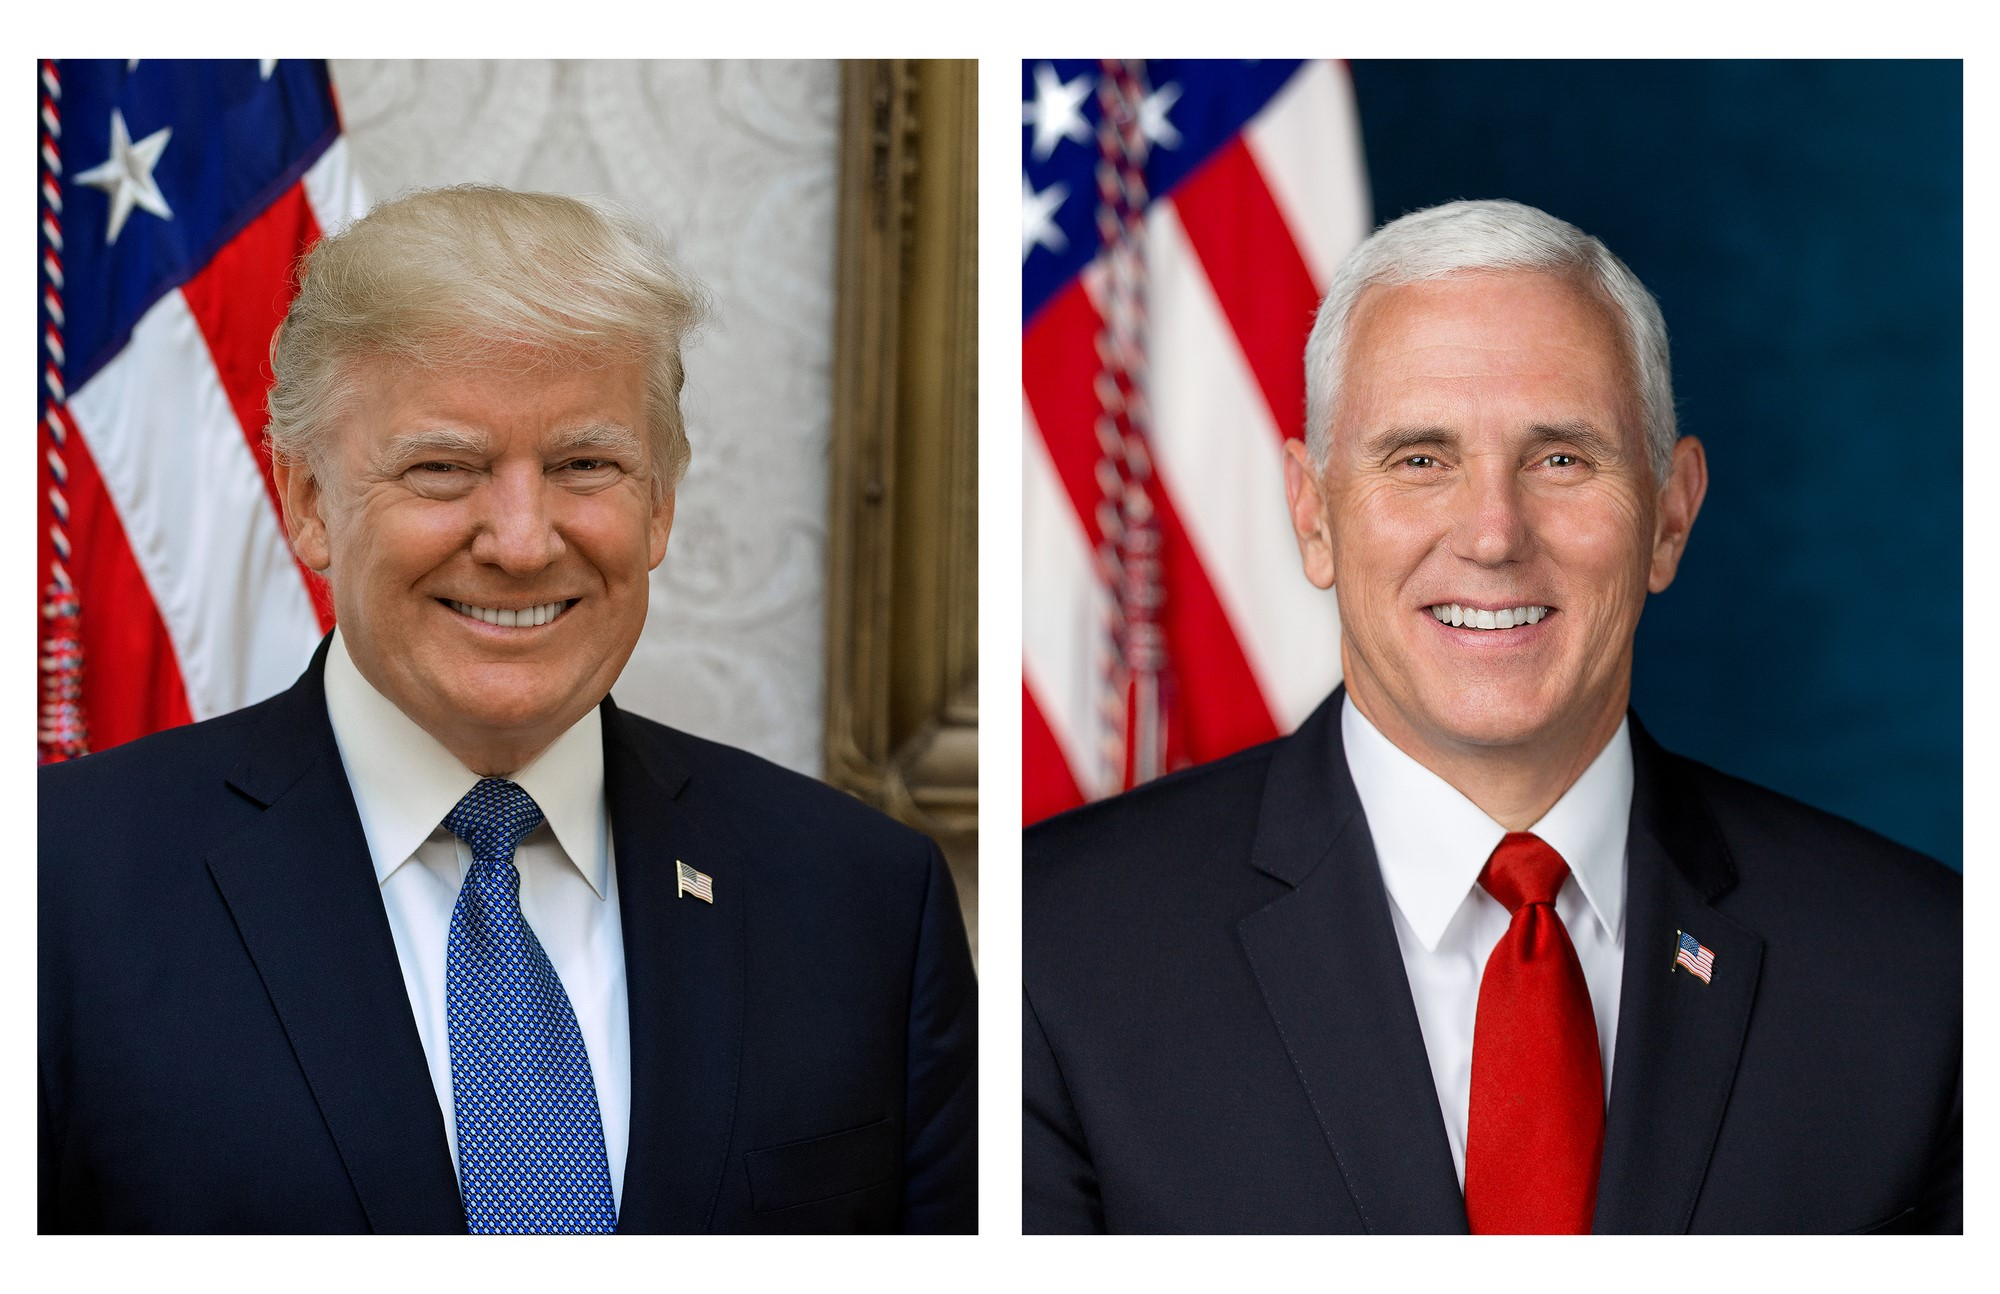 The official portraits of President Donald Trump and Vice President Mike Pence